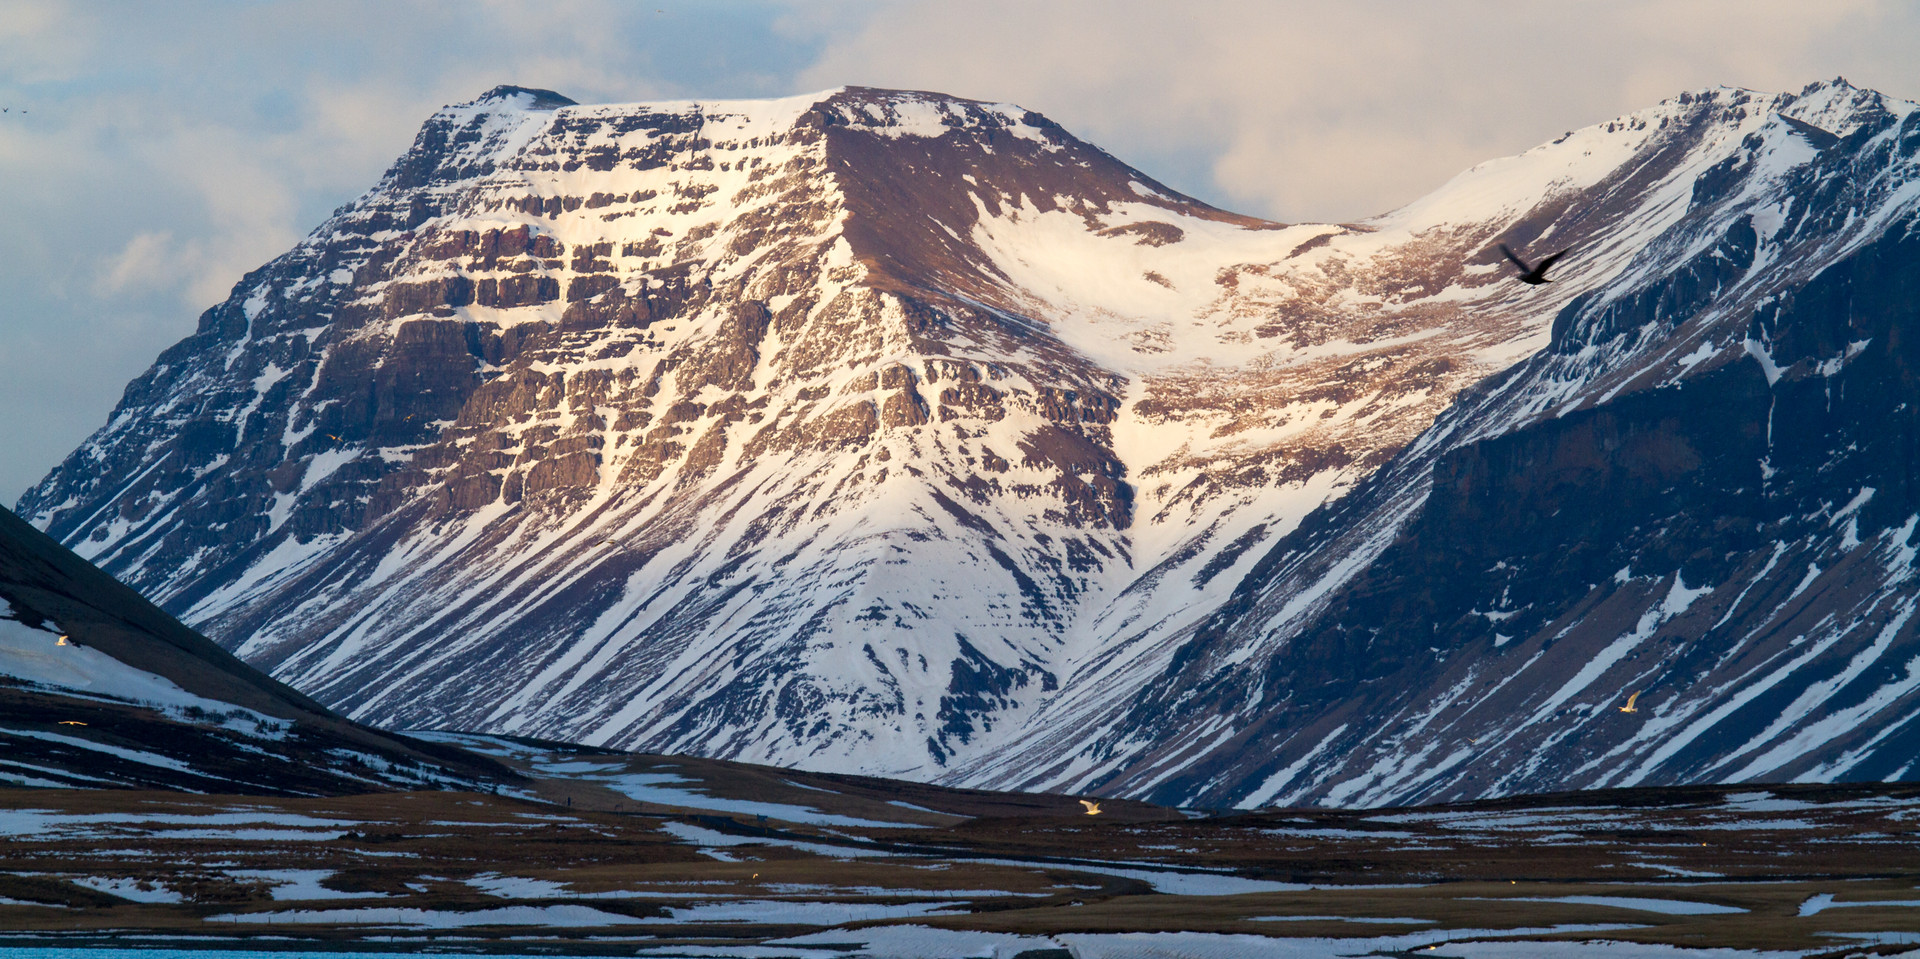 Iceland-Snaefellsnes-William Gray.jpg